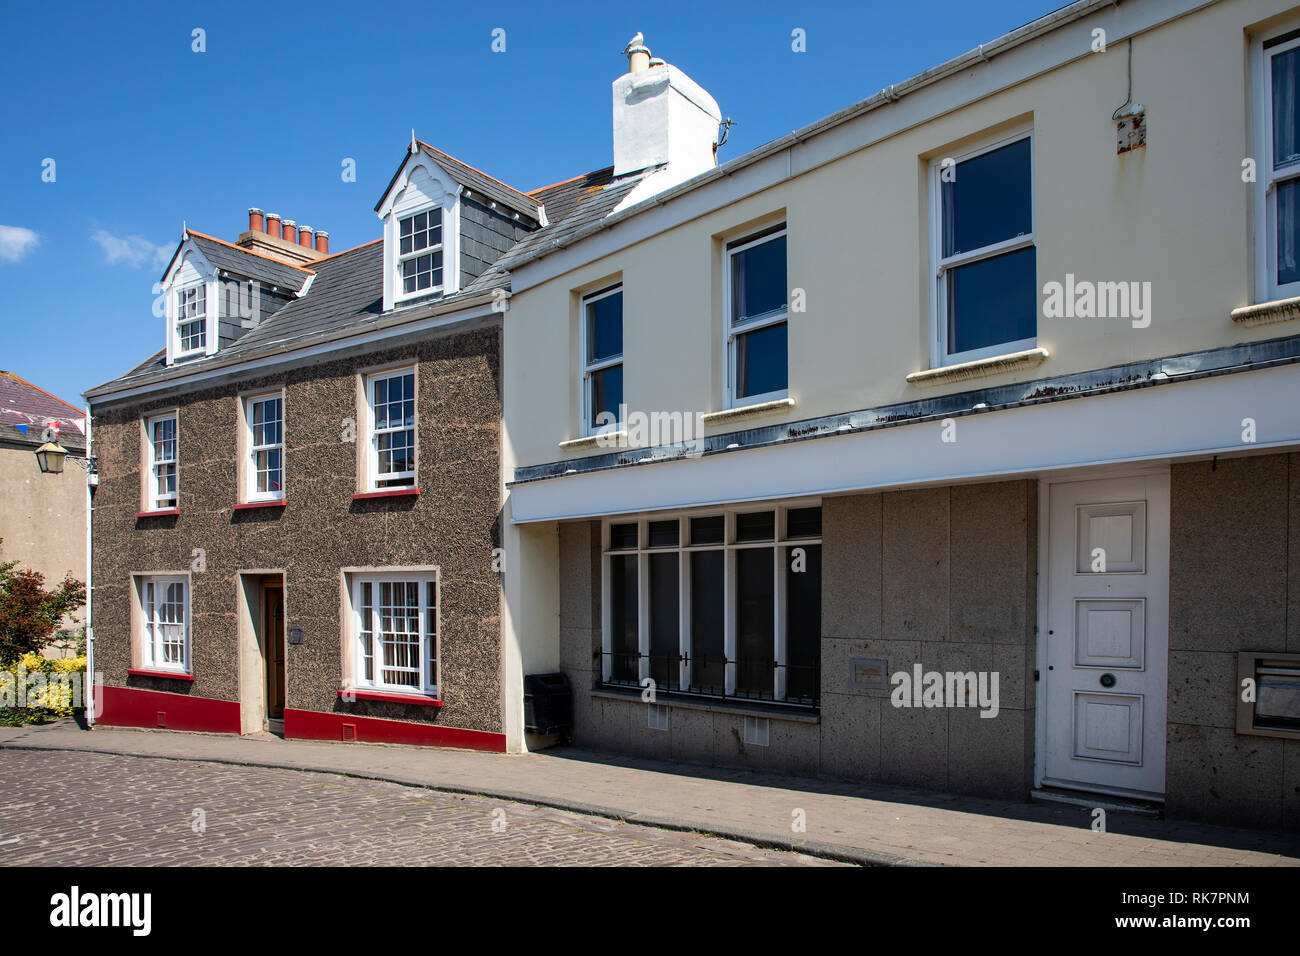 Well kept brightly painted houses at the bottom of Victoria Street on Alderney, Channel Islands. - Stock Image